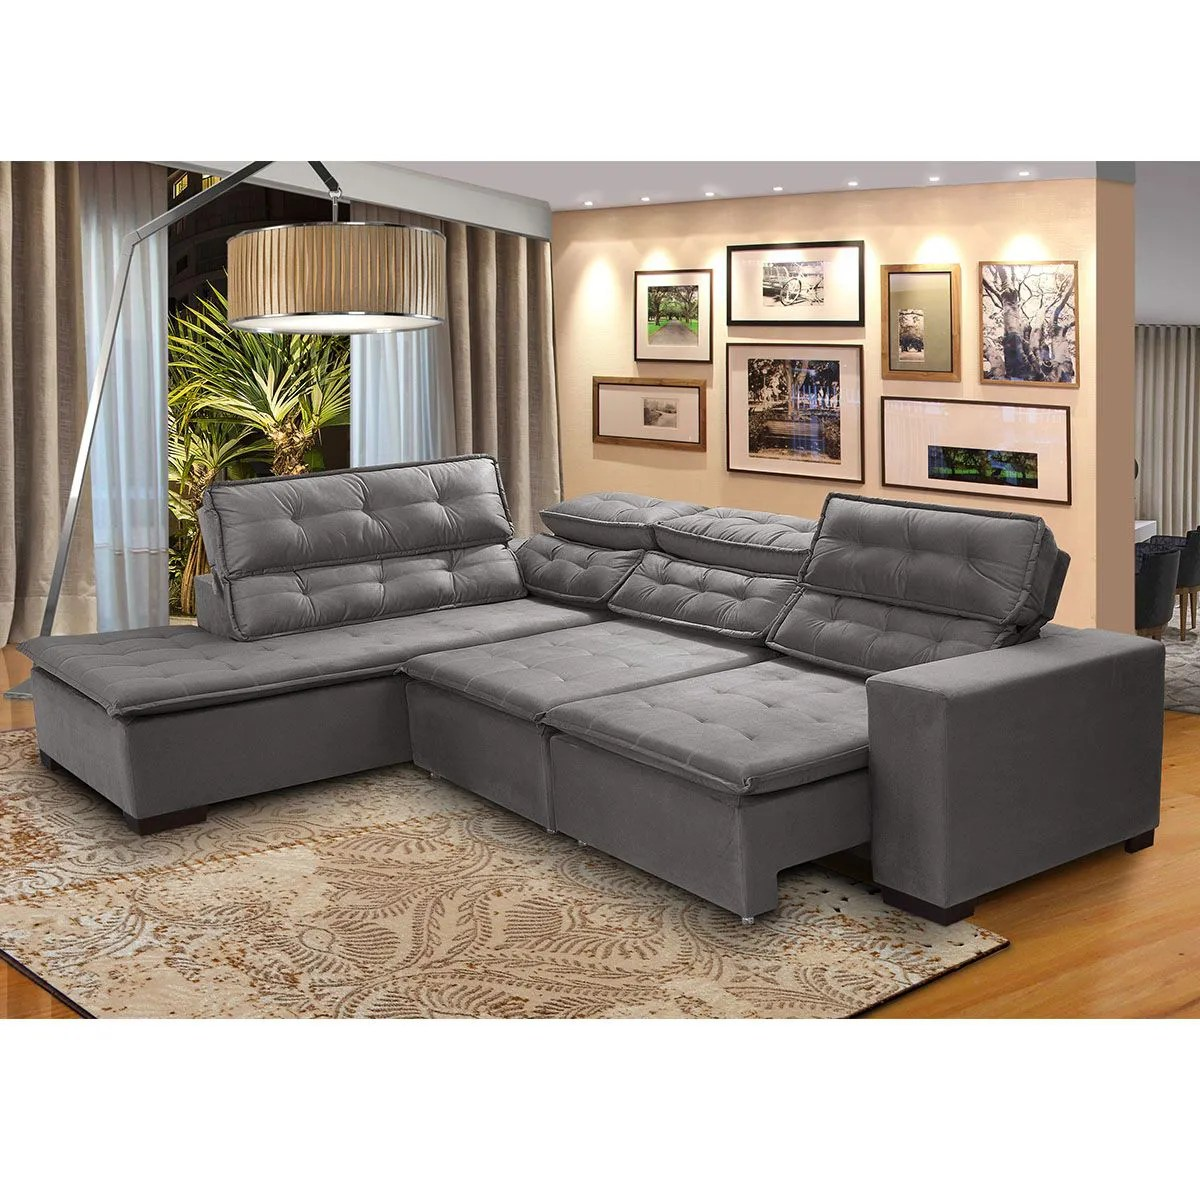 Sofa Retratil E Reclinavel Submarino Sofa De Canto Retratil Baci Living Room